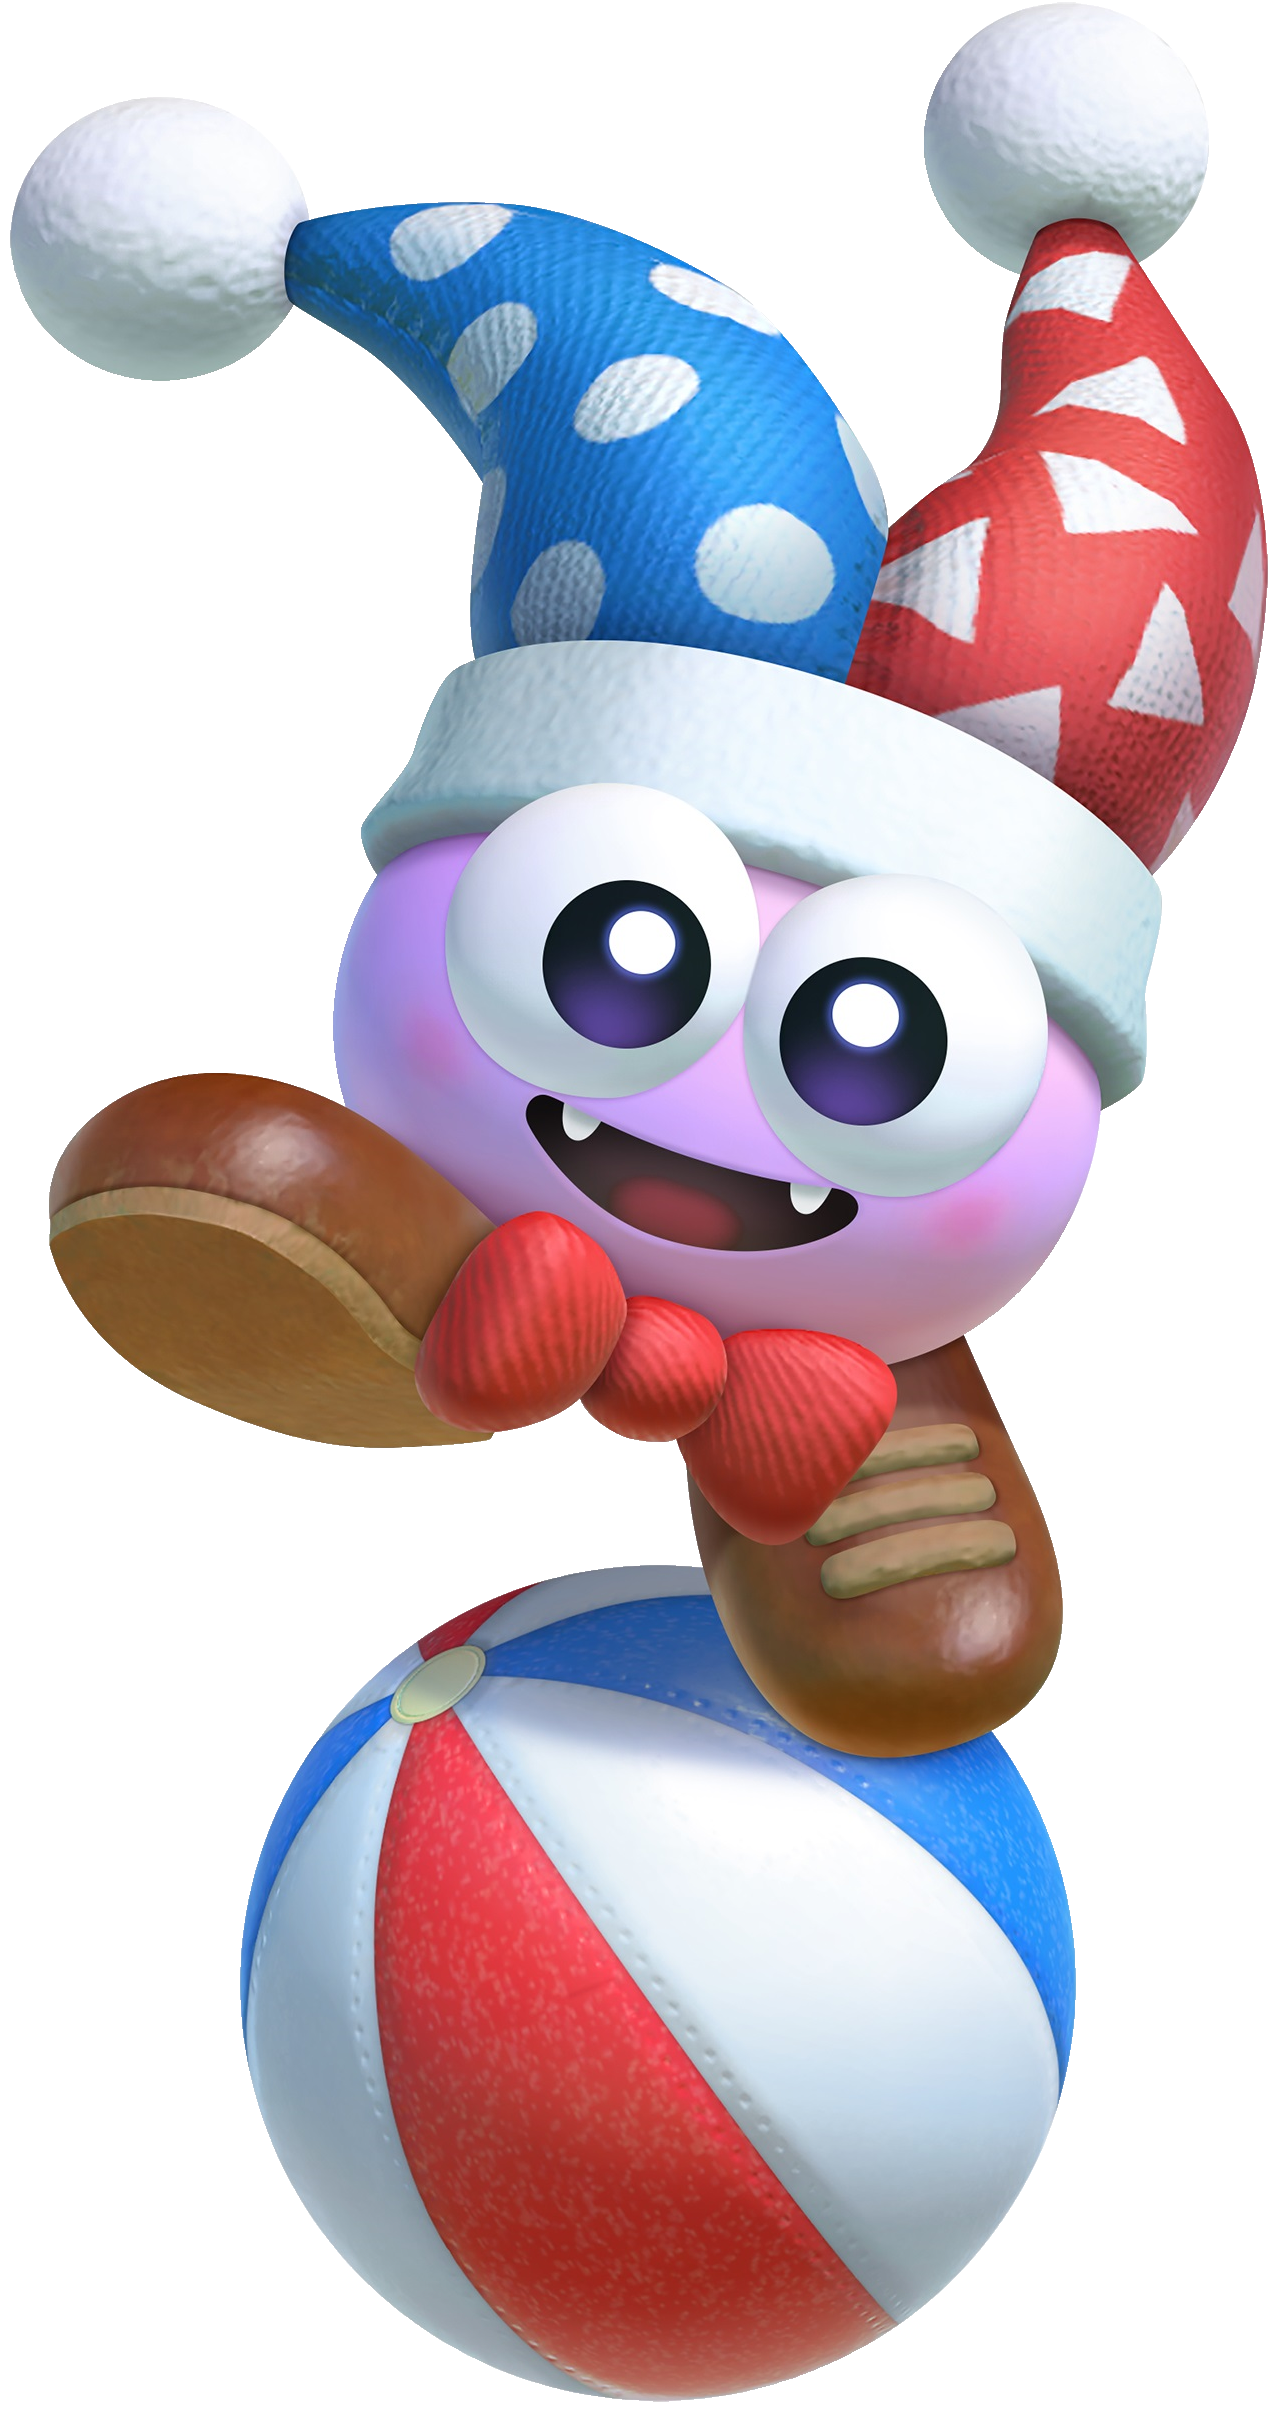 Mario Kirby Another Brutal Knight Adventure Made Up